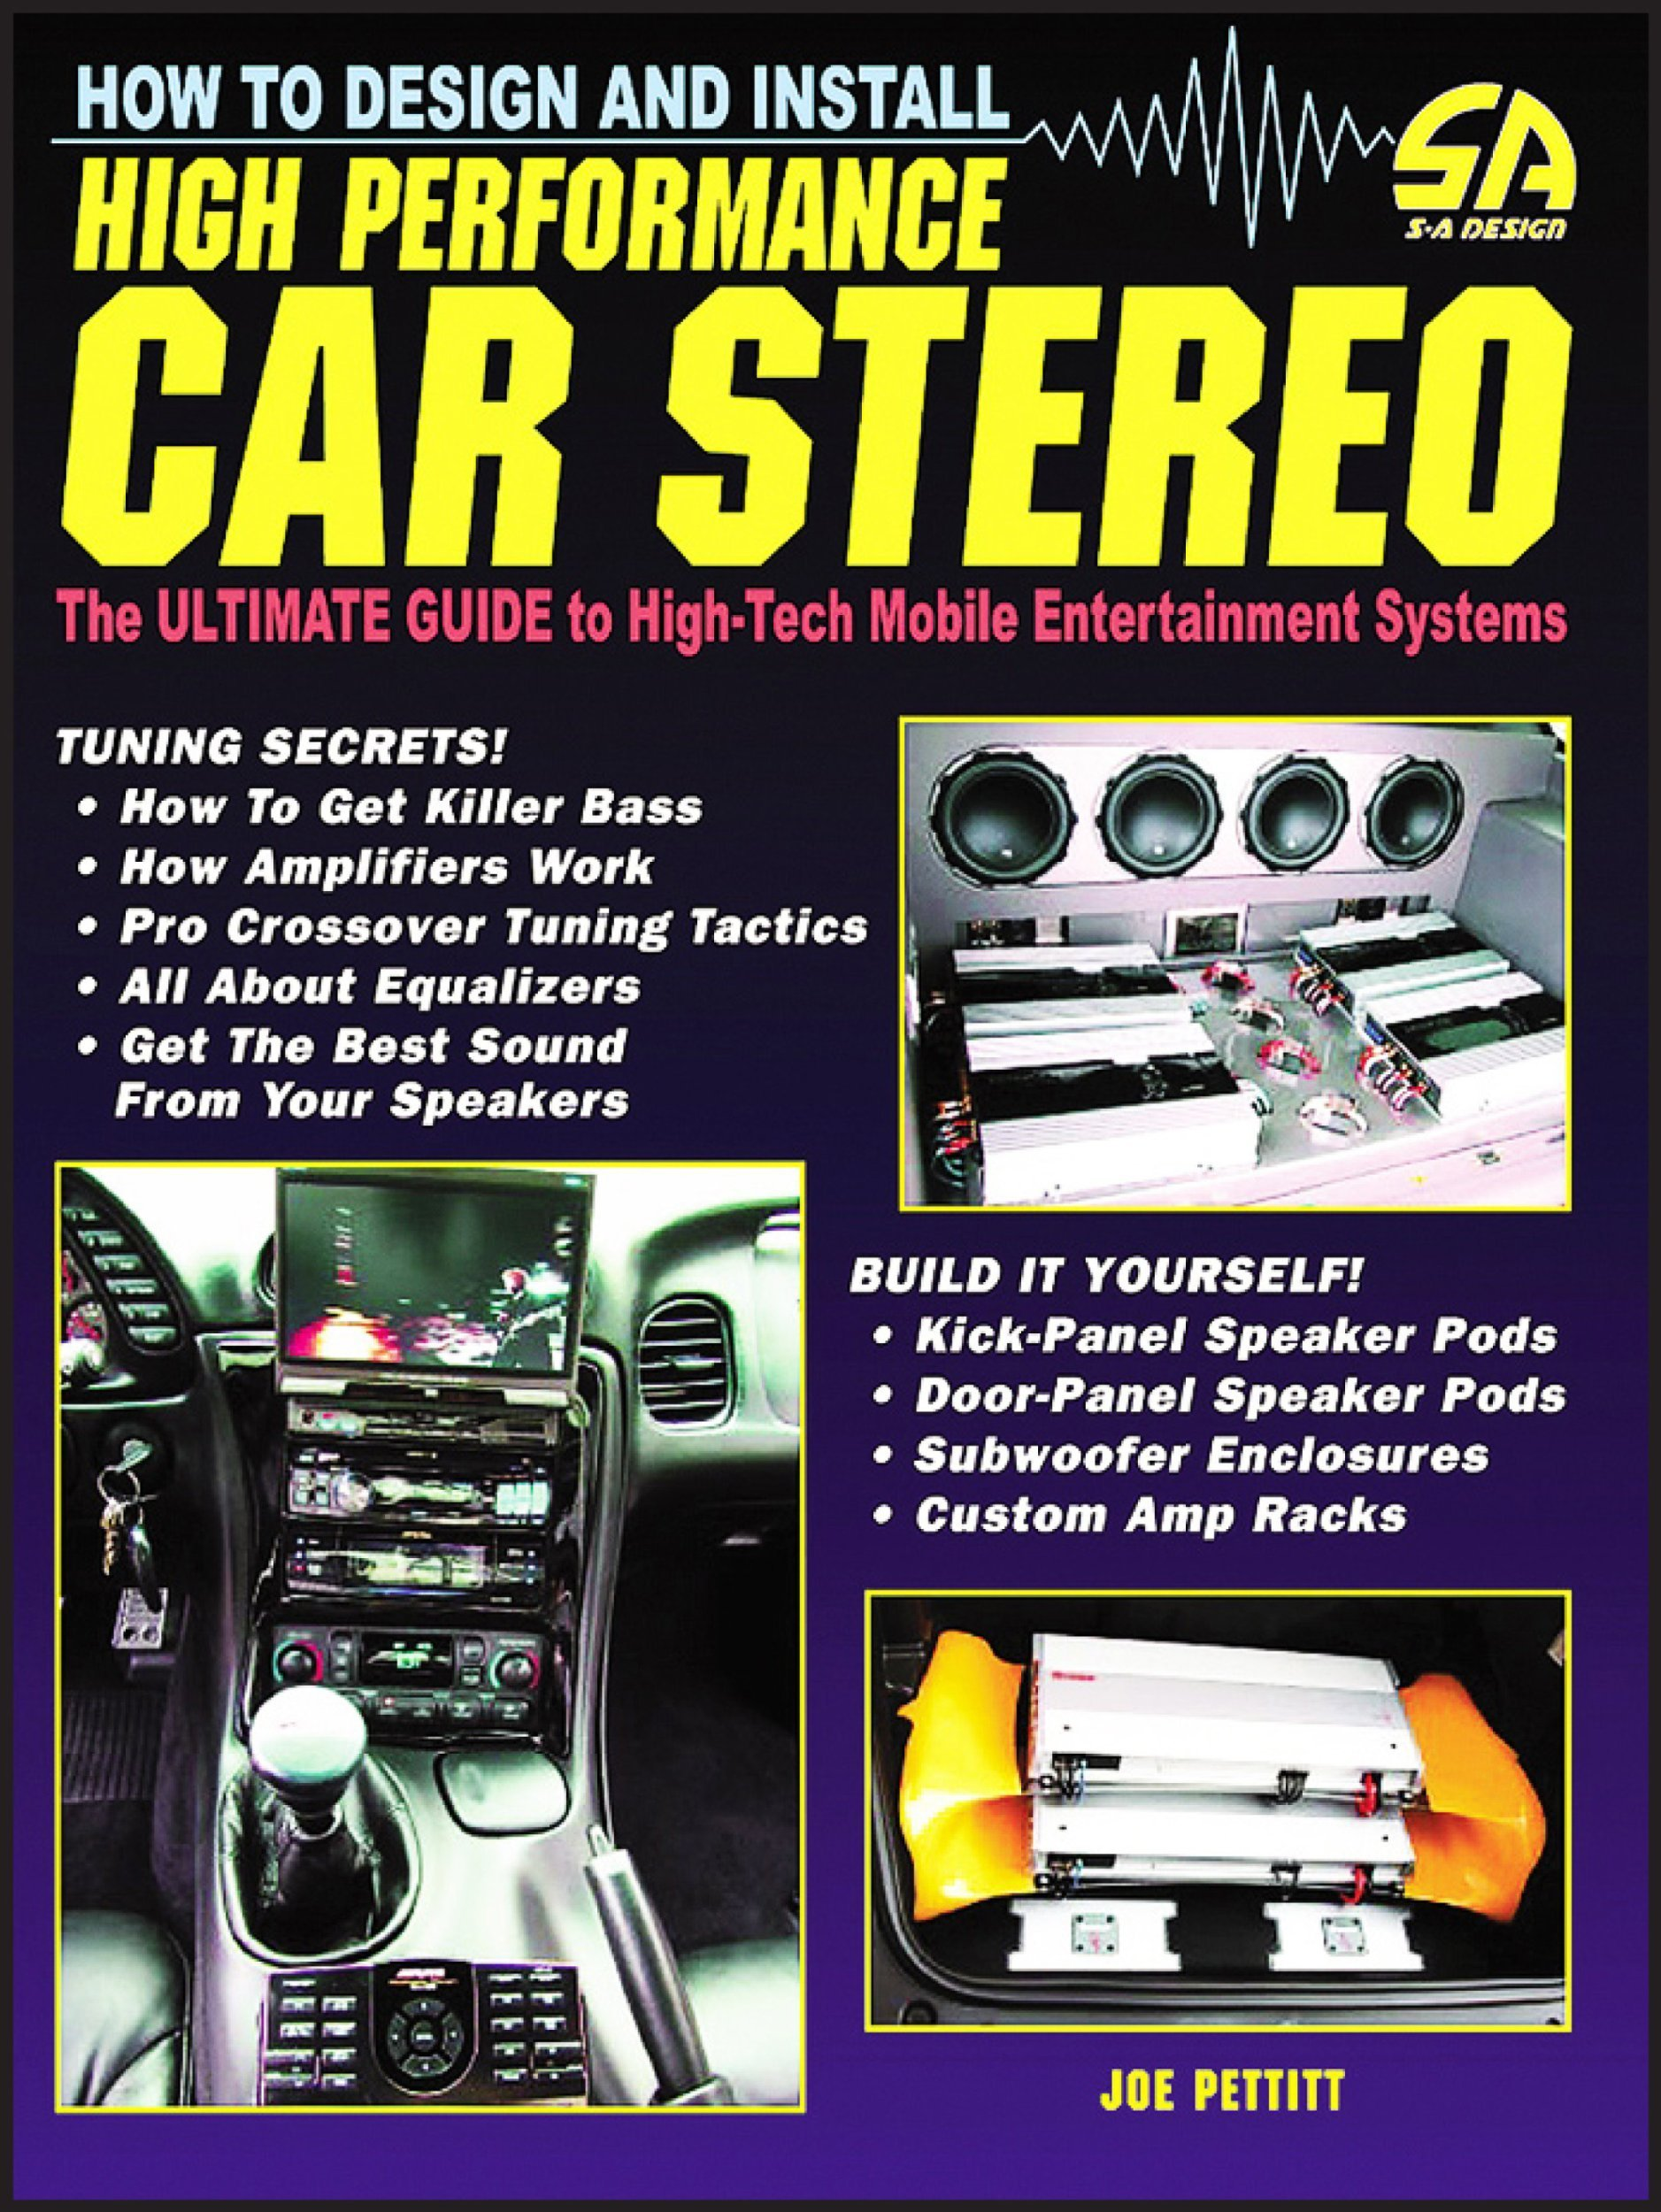 How To Design And Install High Performance Car Stereo Revised S A Sound System Guide Joe Pettitt 0601784000455 Books